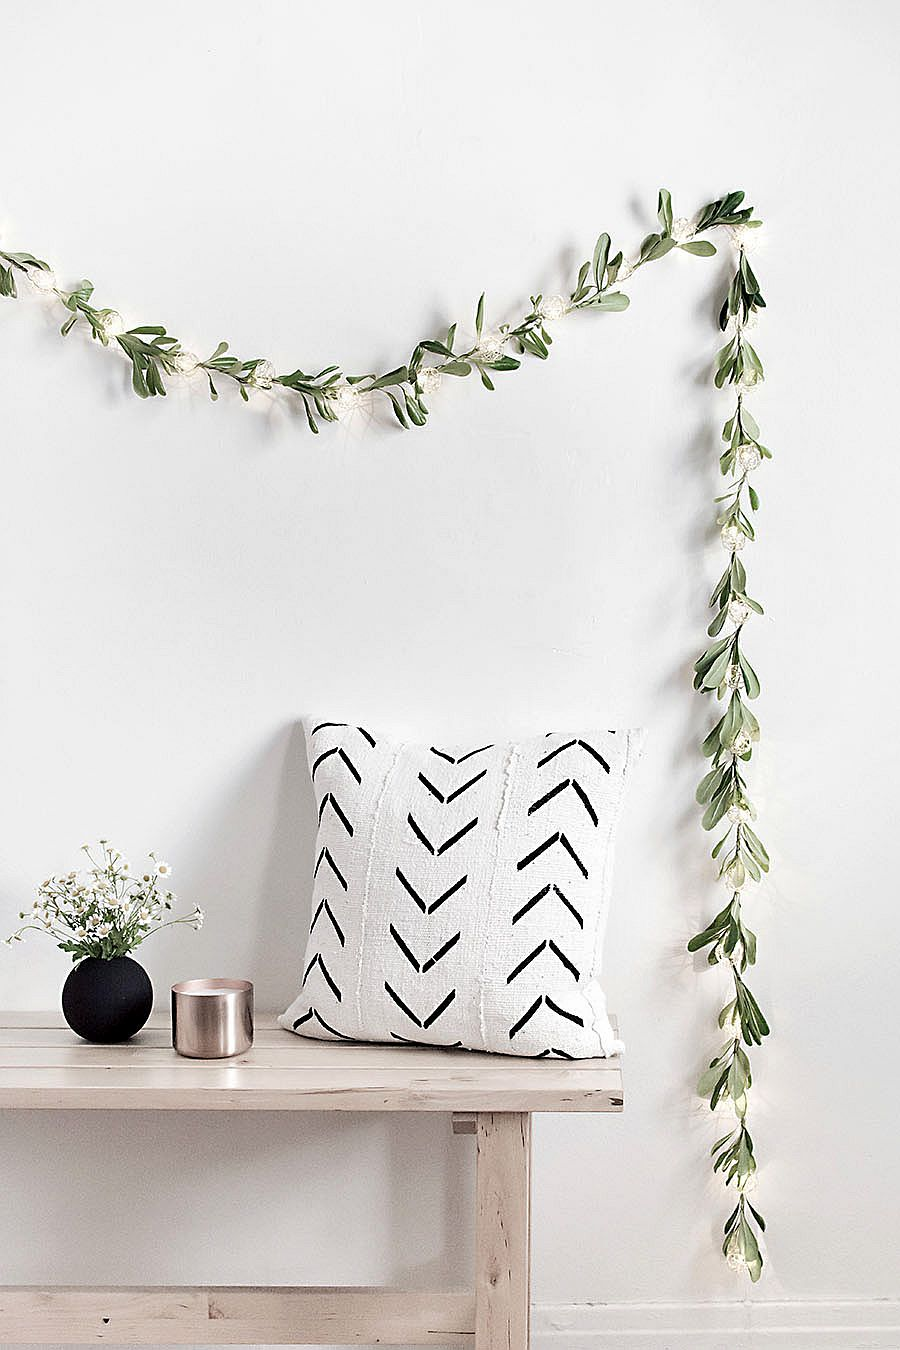 DIY String Lights Garland is both festive and understated